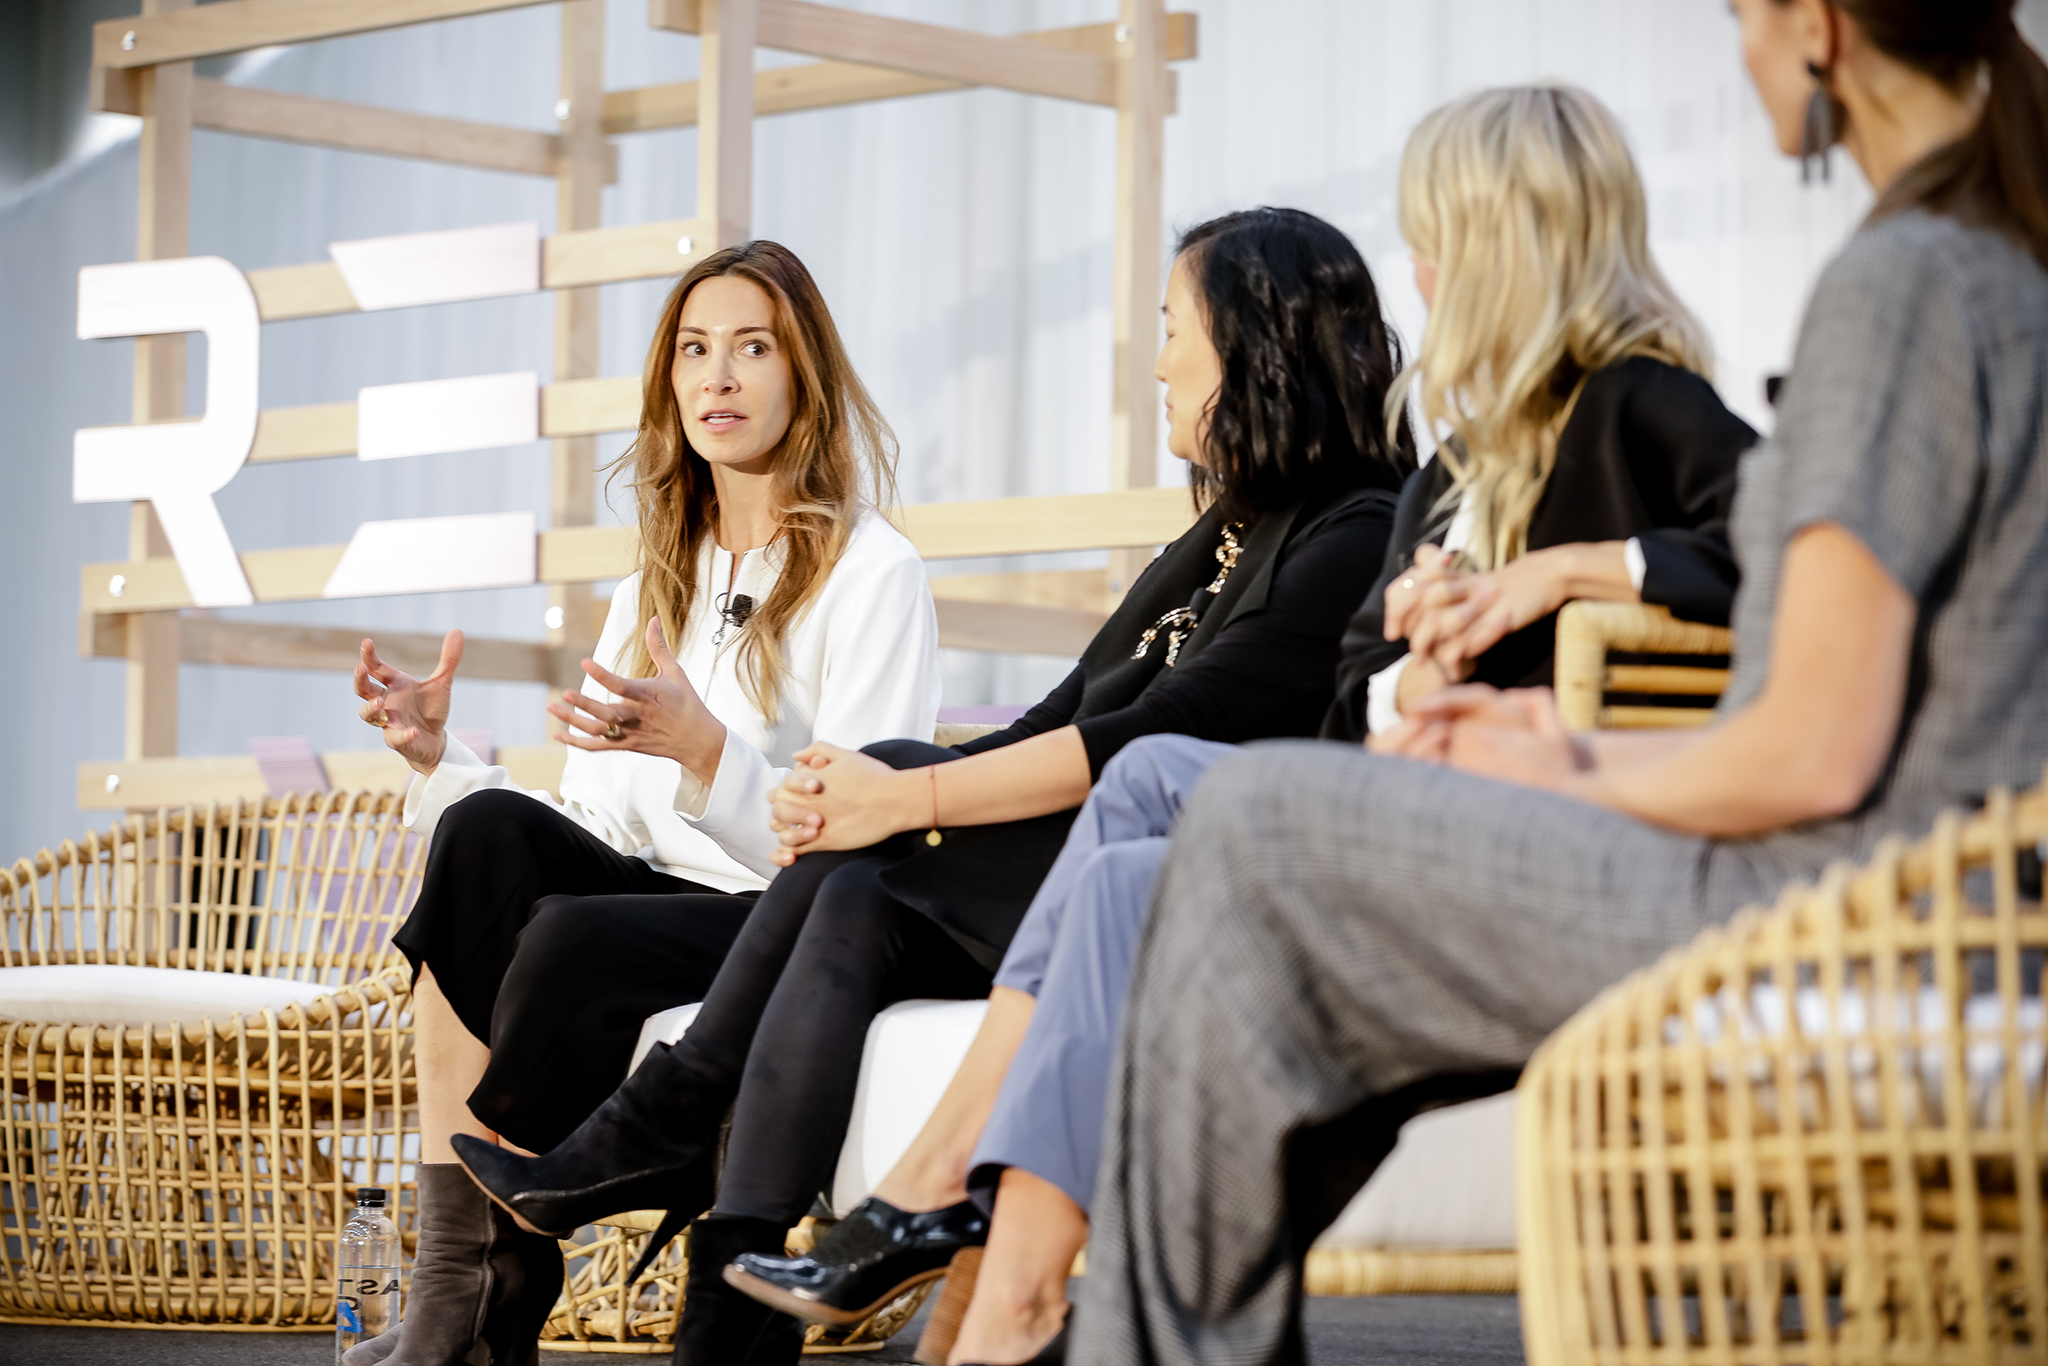 Vicki von Holzhausen, Melissa Mash and Nina Faulhaber talked conscious consumers during one of the Remarket panels.